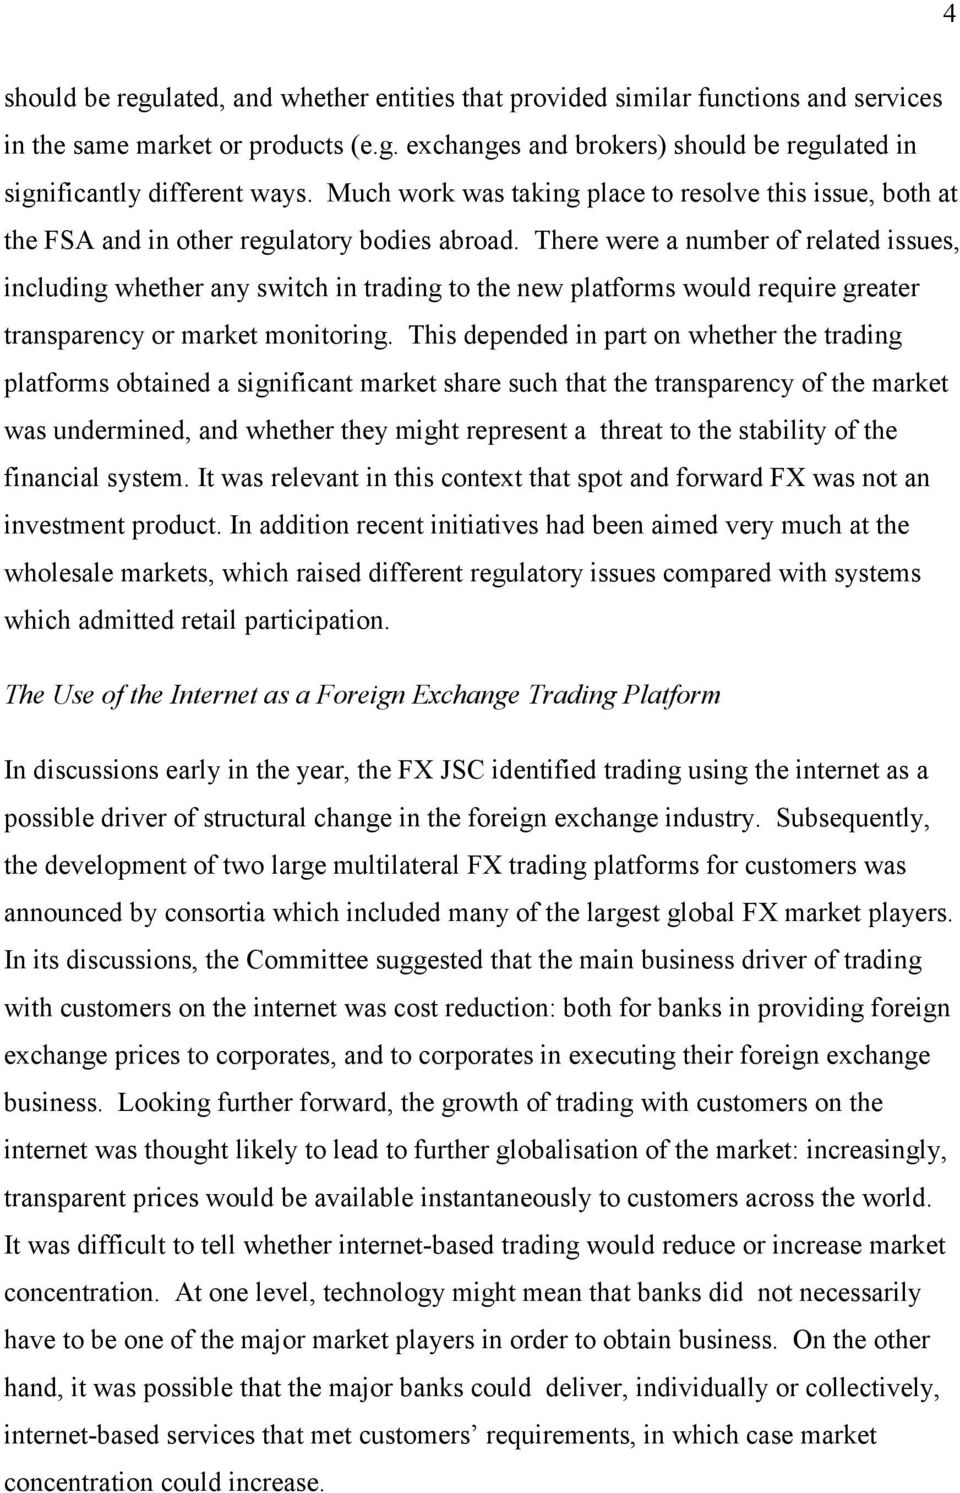 There were a number of related issues, including whether any switch in trading to the new platforms would require greater transparency or market monitoring.